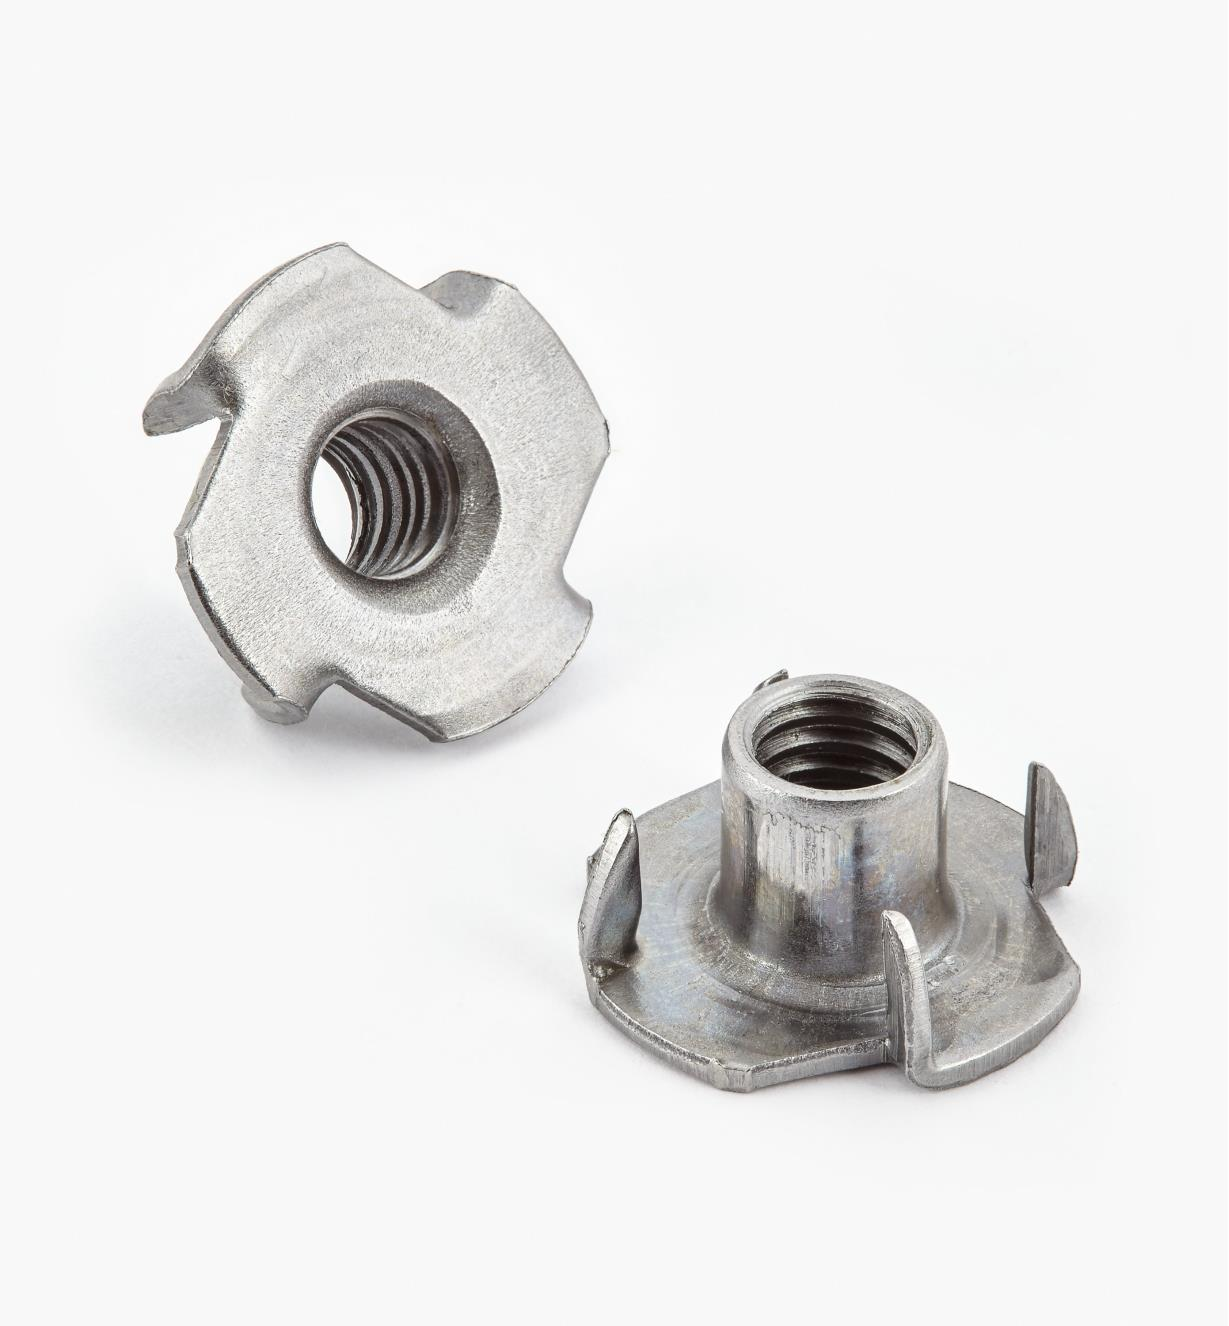 00N5214 - 4-Prong T-Nuts, pkg. of 100